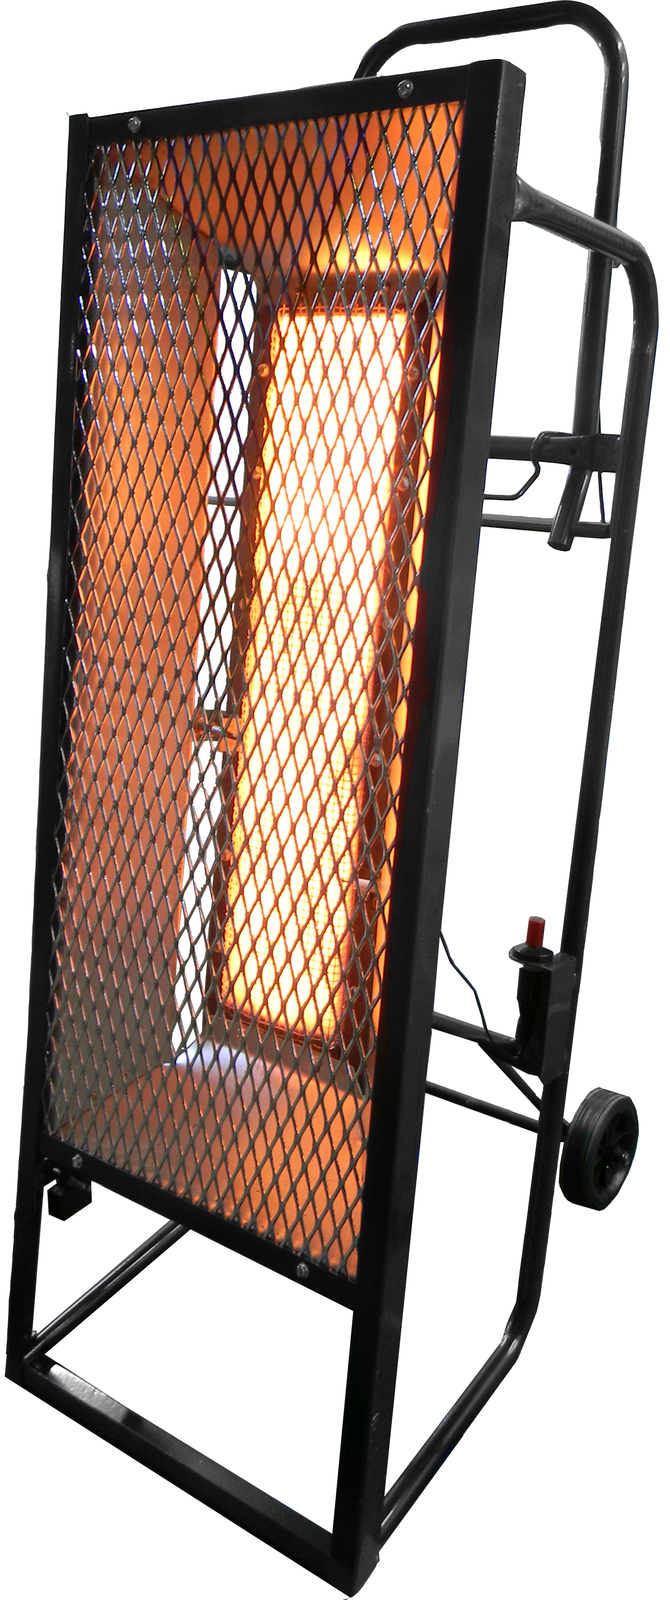 Propane Radiant Heater >> Lb White Sun Blast 35 Flat Panel Radiant Heater Propane Gas 15 Ft Long Hose 35 000 Btu Hr Input